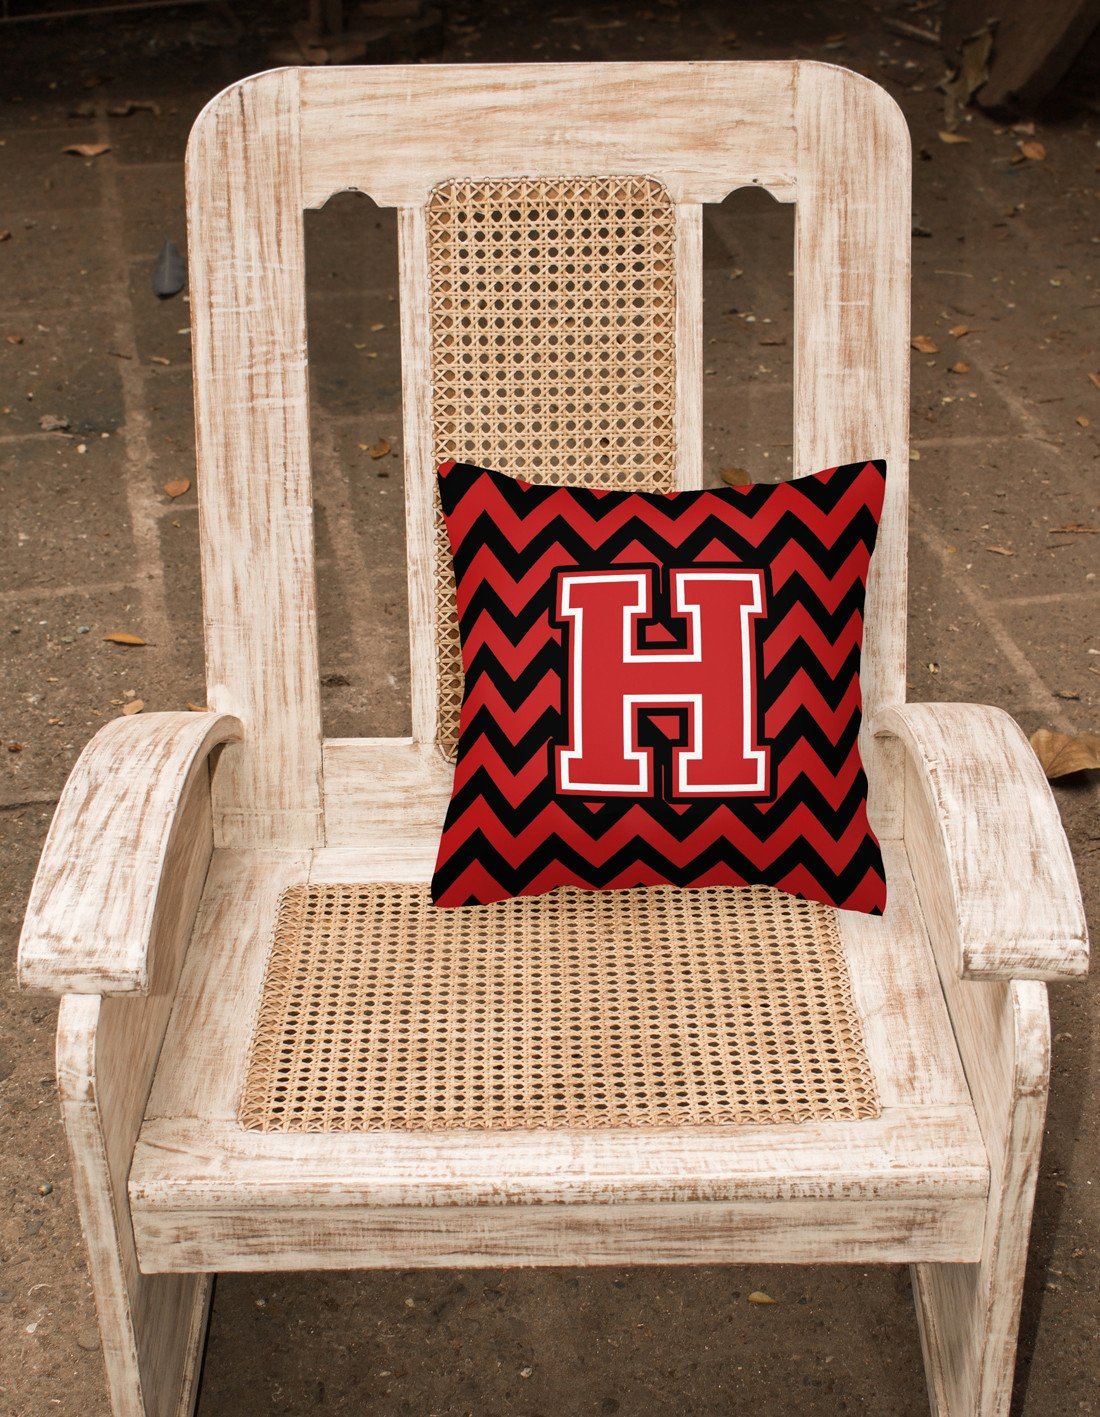 Letter H Chevron Black and Red   Fabric Decorative Pillow CJ1047-HPW1414 by Caroline's Treasures